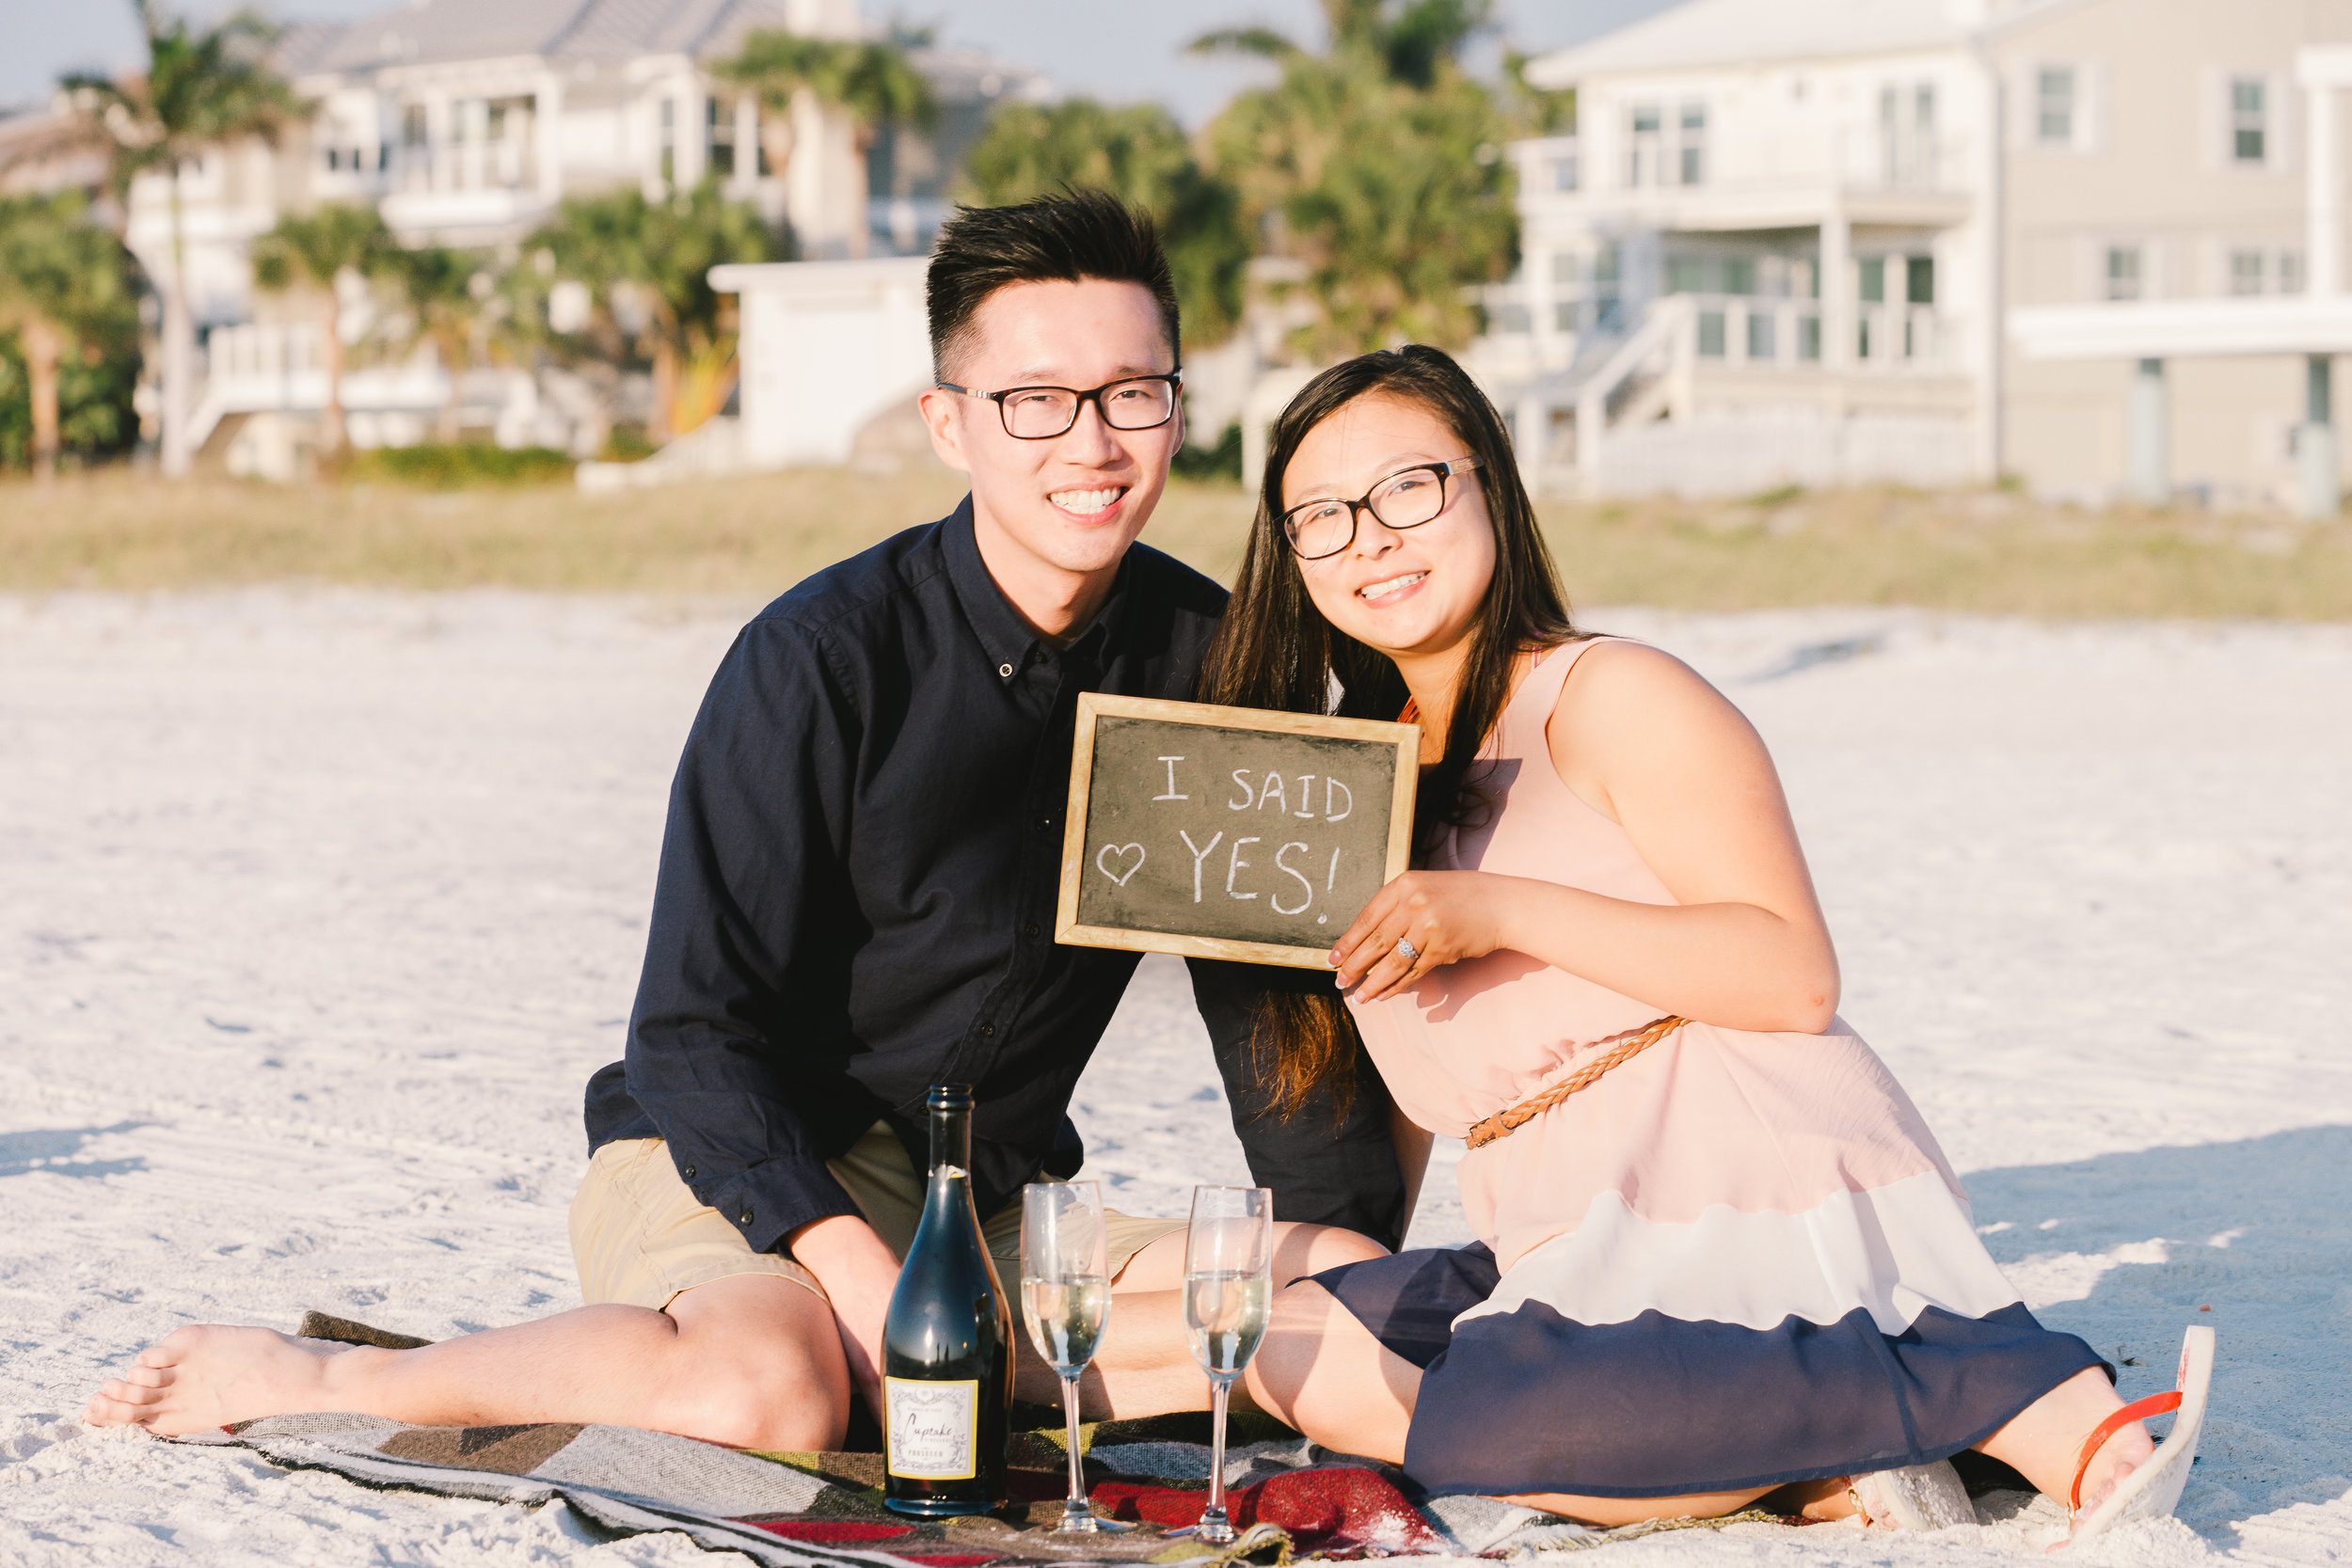 Tampa wedding photographer, Surprise proposal at the beach, Clearwater engagement photos, St.Pete wedding photographer, Tampa engagement session, Wedding photographer, Mir Salgado Photography, Allura studios, engagement session